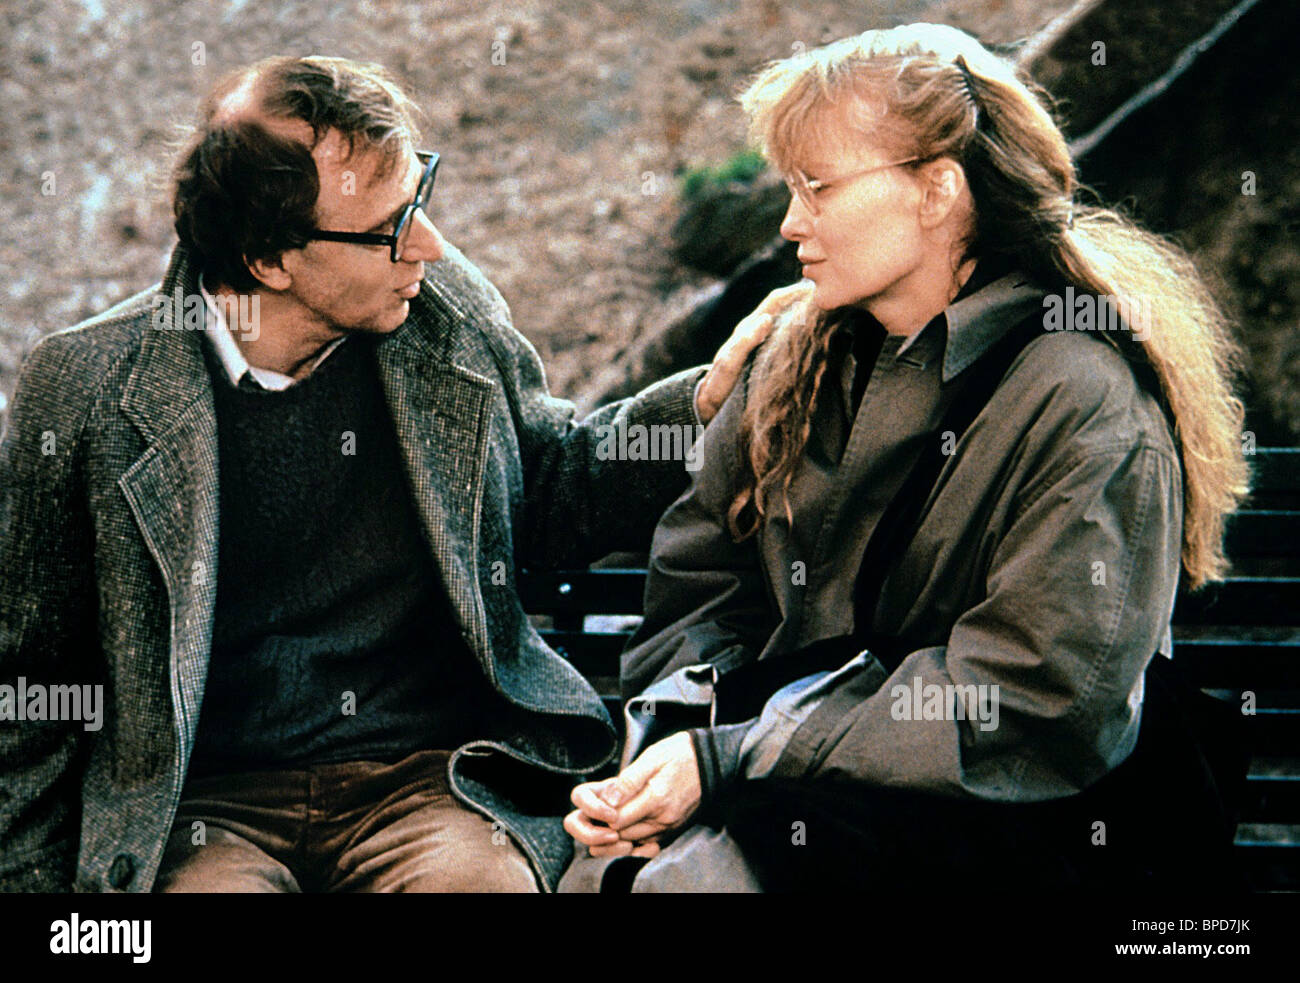 an examination of the movie oedipus wrecks by woody allen New york stories (1989)  woody allen's oedipus wrecks segment was the nineteenth cinema film directed by allen quotes.